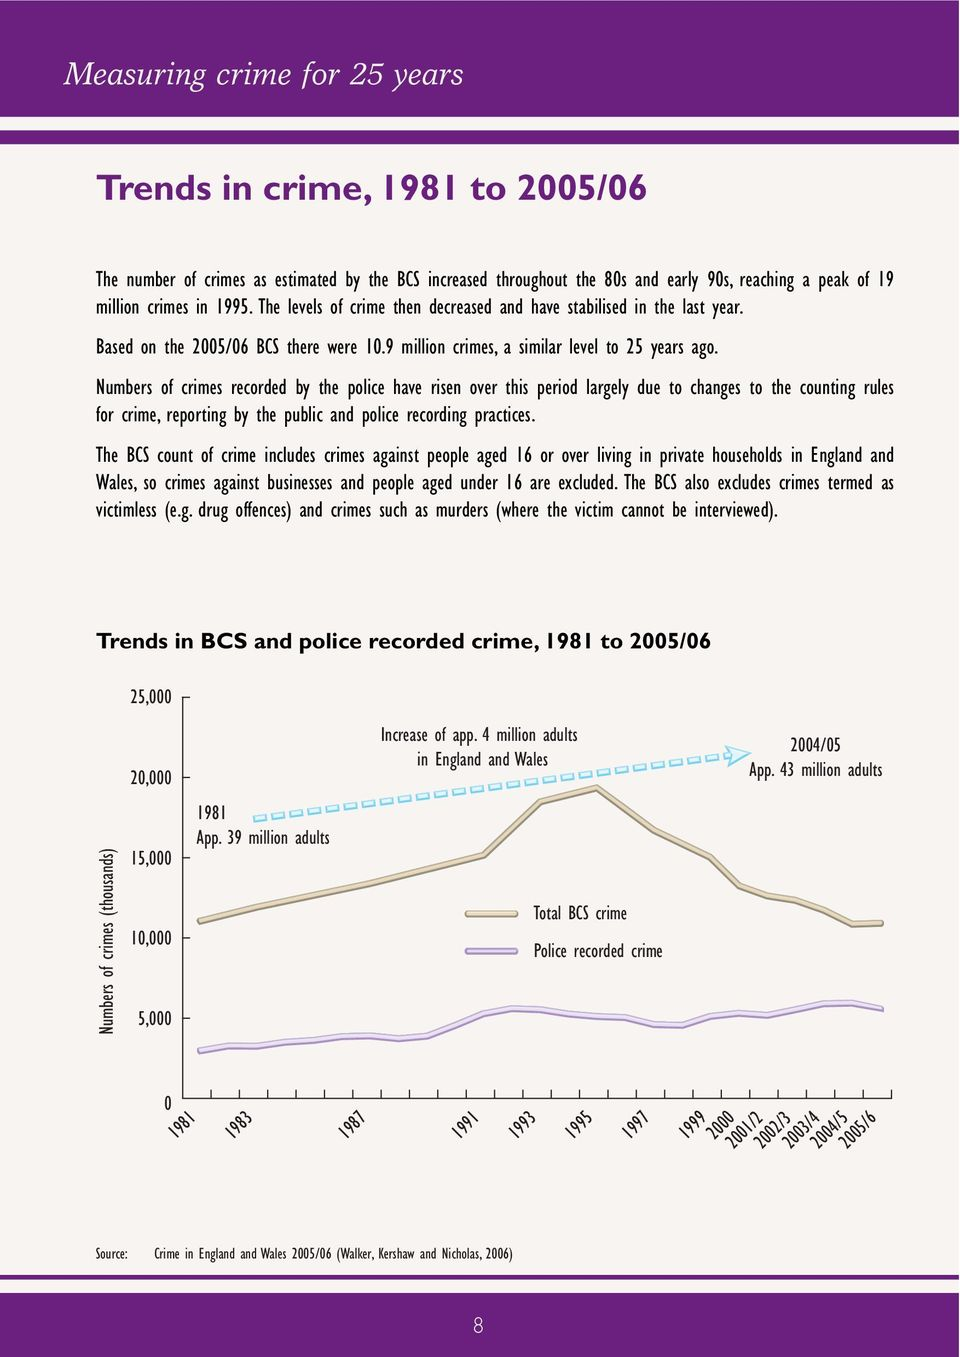 Numbers of crimes recorded by the police have risen over this period largely due to changes to the counting rules for crime, reporting by the public and police recording practices.